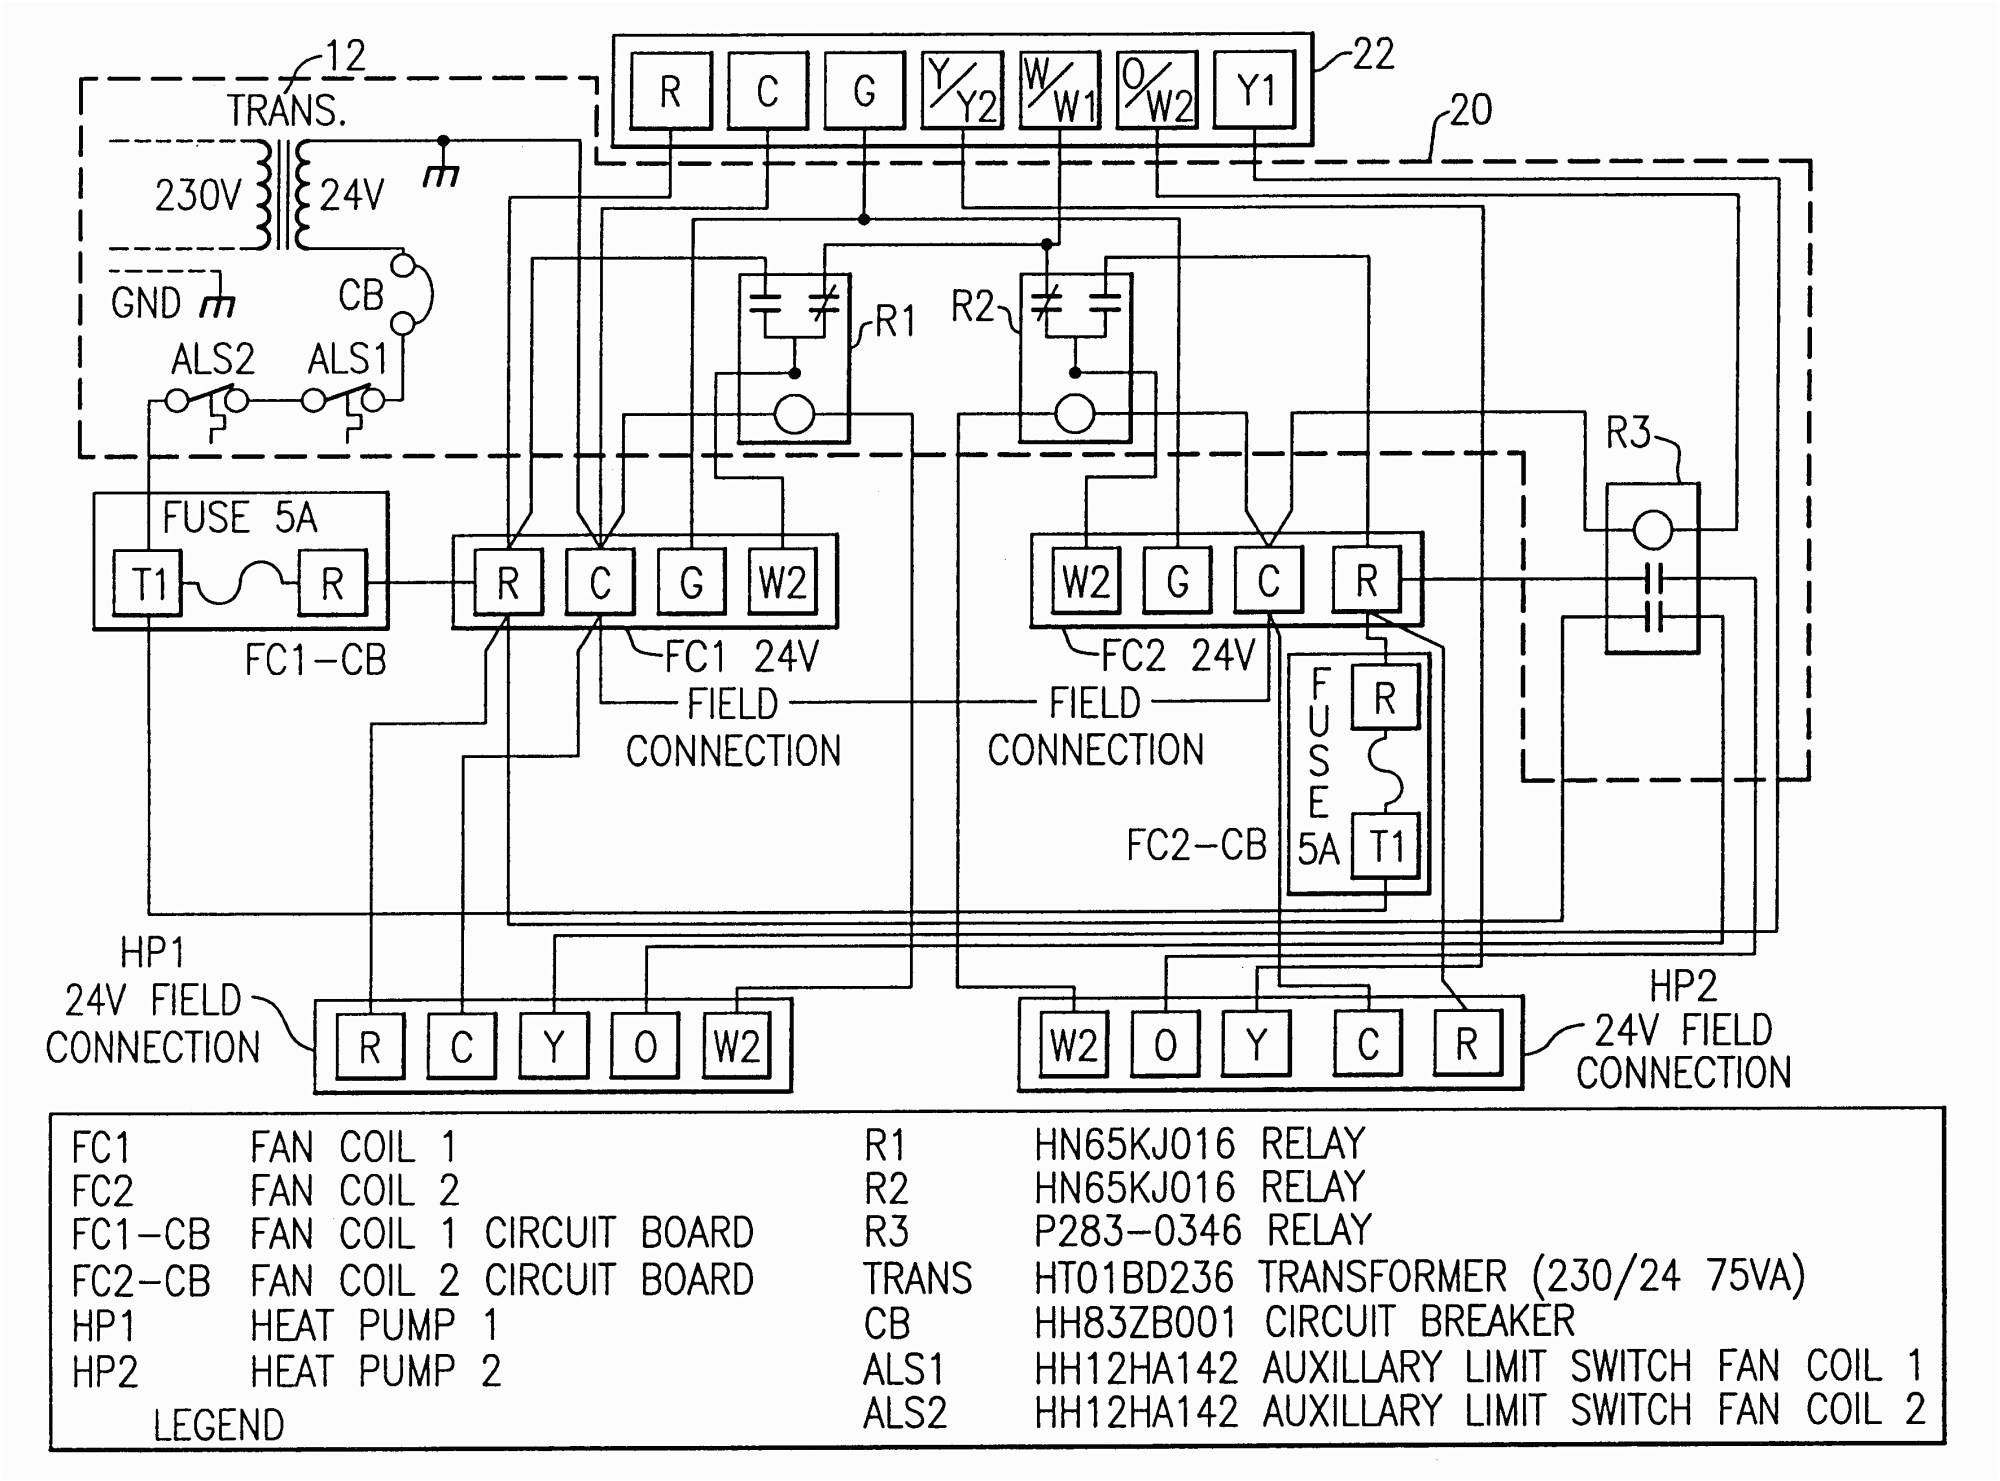 hight resolution of  carrier split ac wiring diagram collection wiring diagram sample on hvac fan control relay diagram